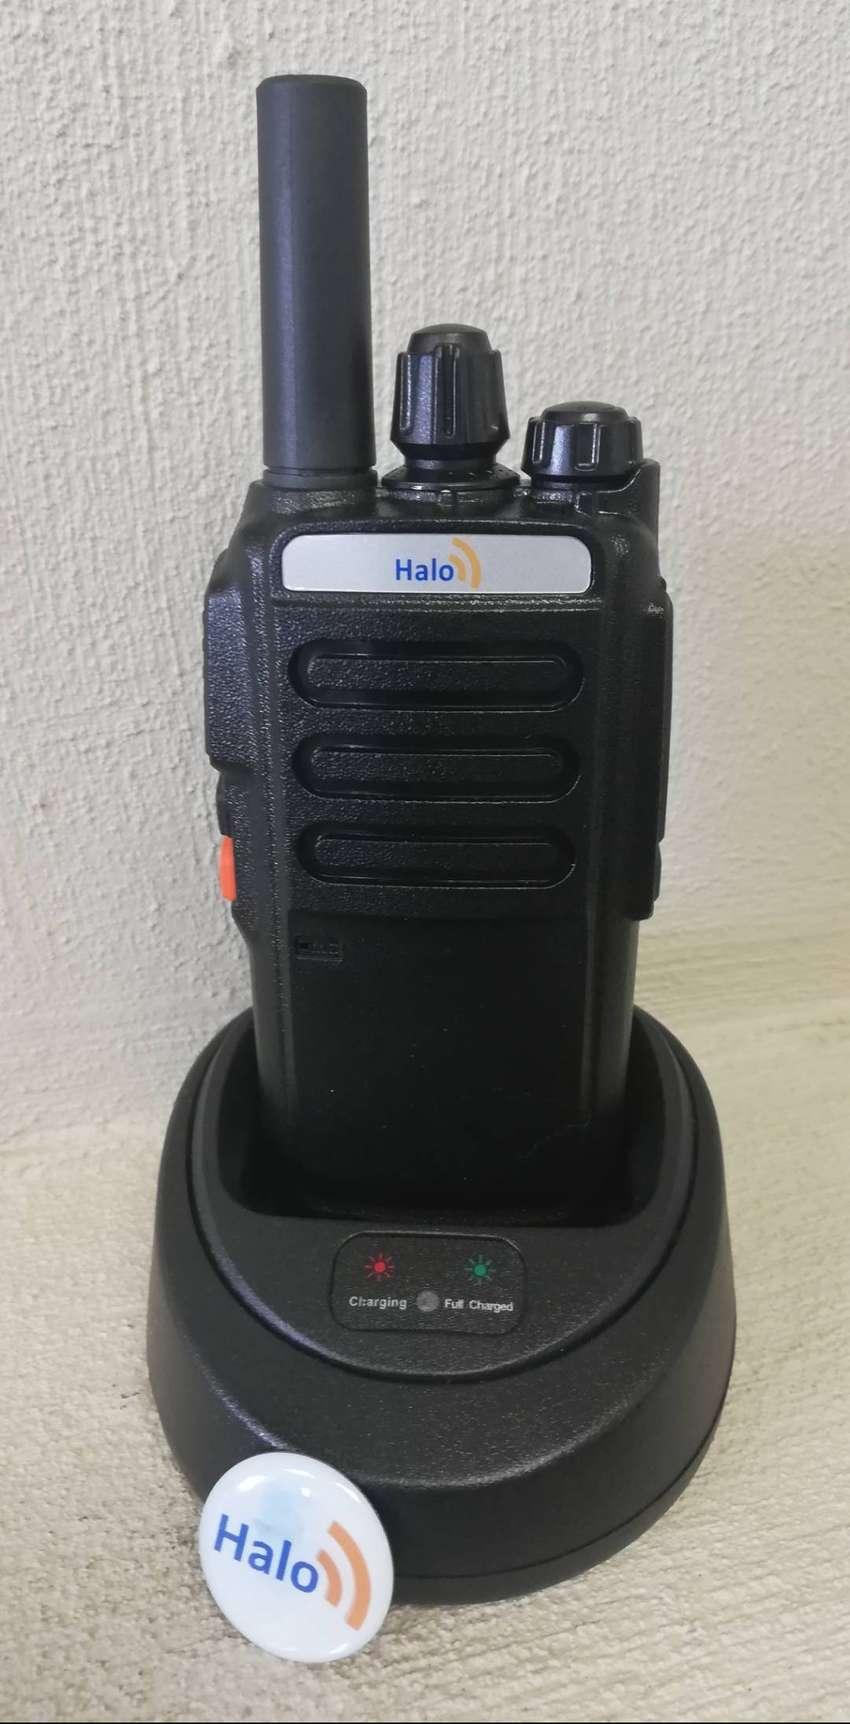 Halo SS96 PTT Radio - Security Industry - NFC Tagging & Tracking 0